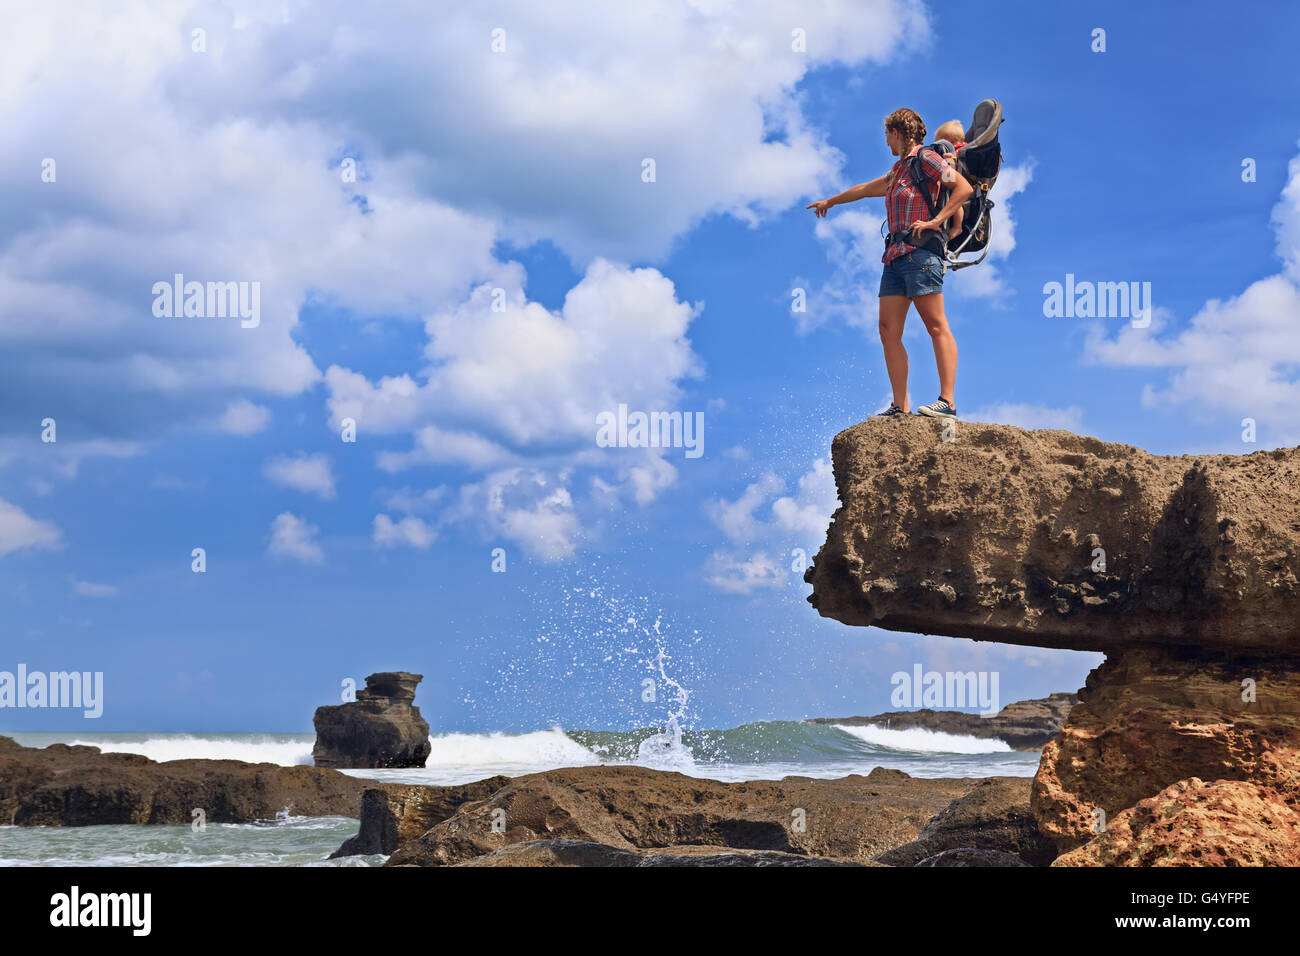 Nature walk on sea beach. Happy mother high rock cliff hold little traveller in carrying backpack. Baby ride on - Stock Image